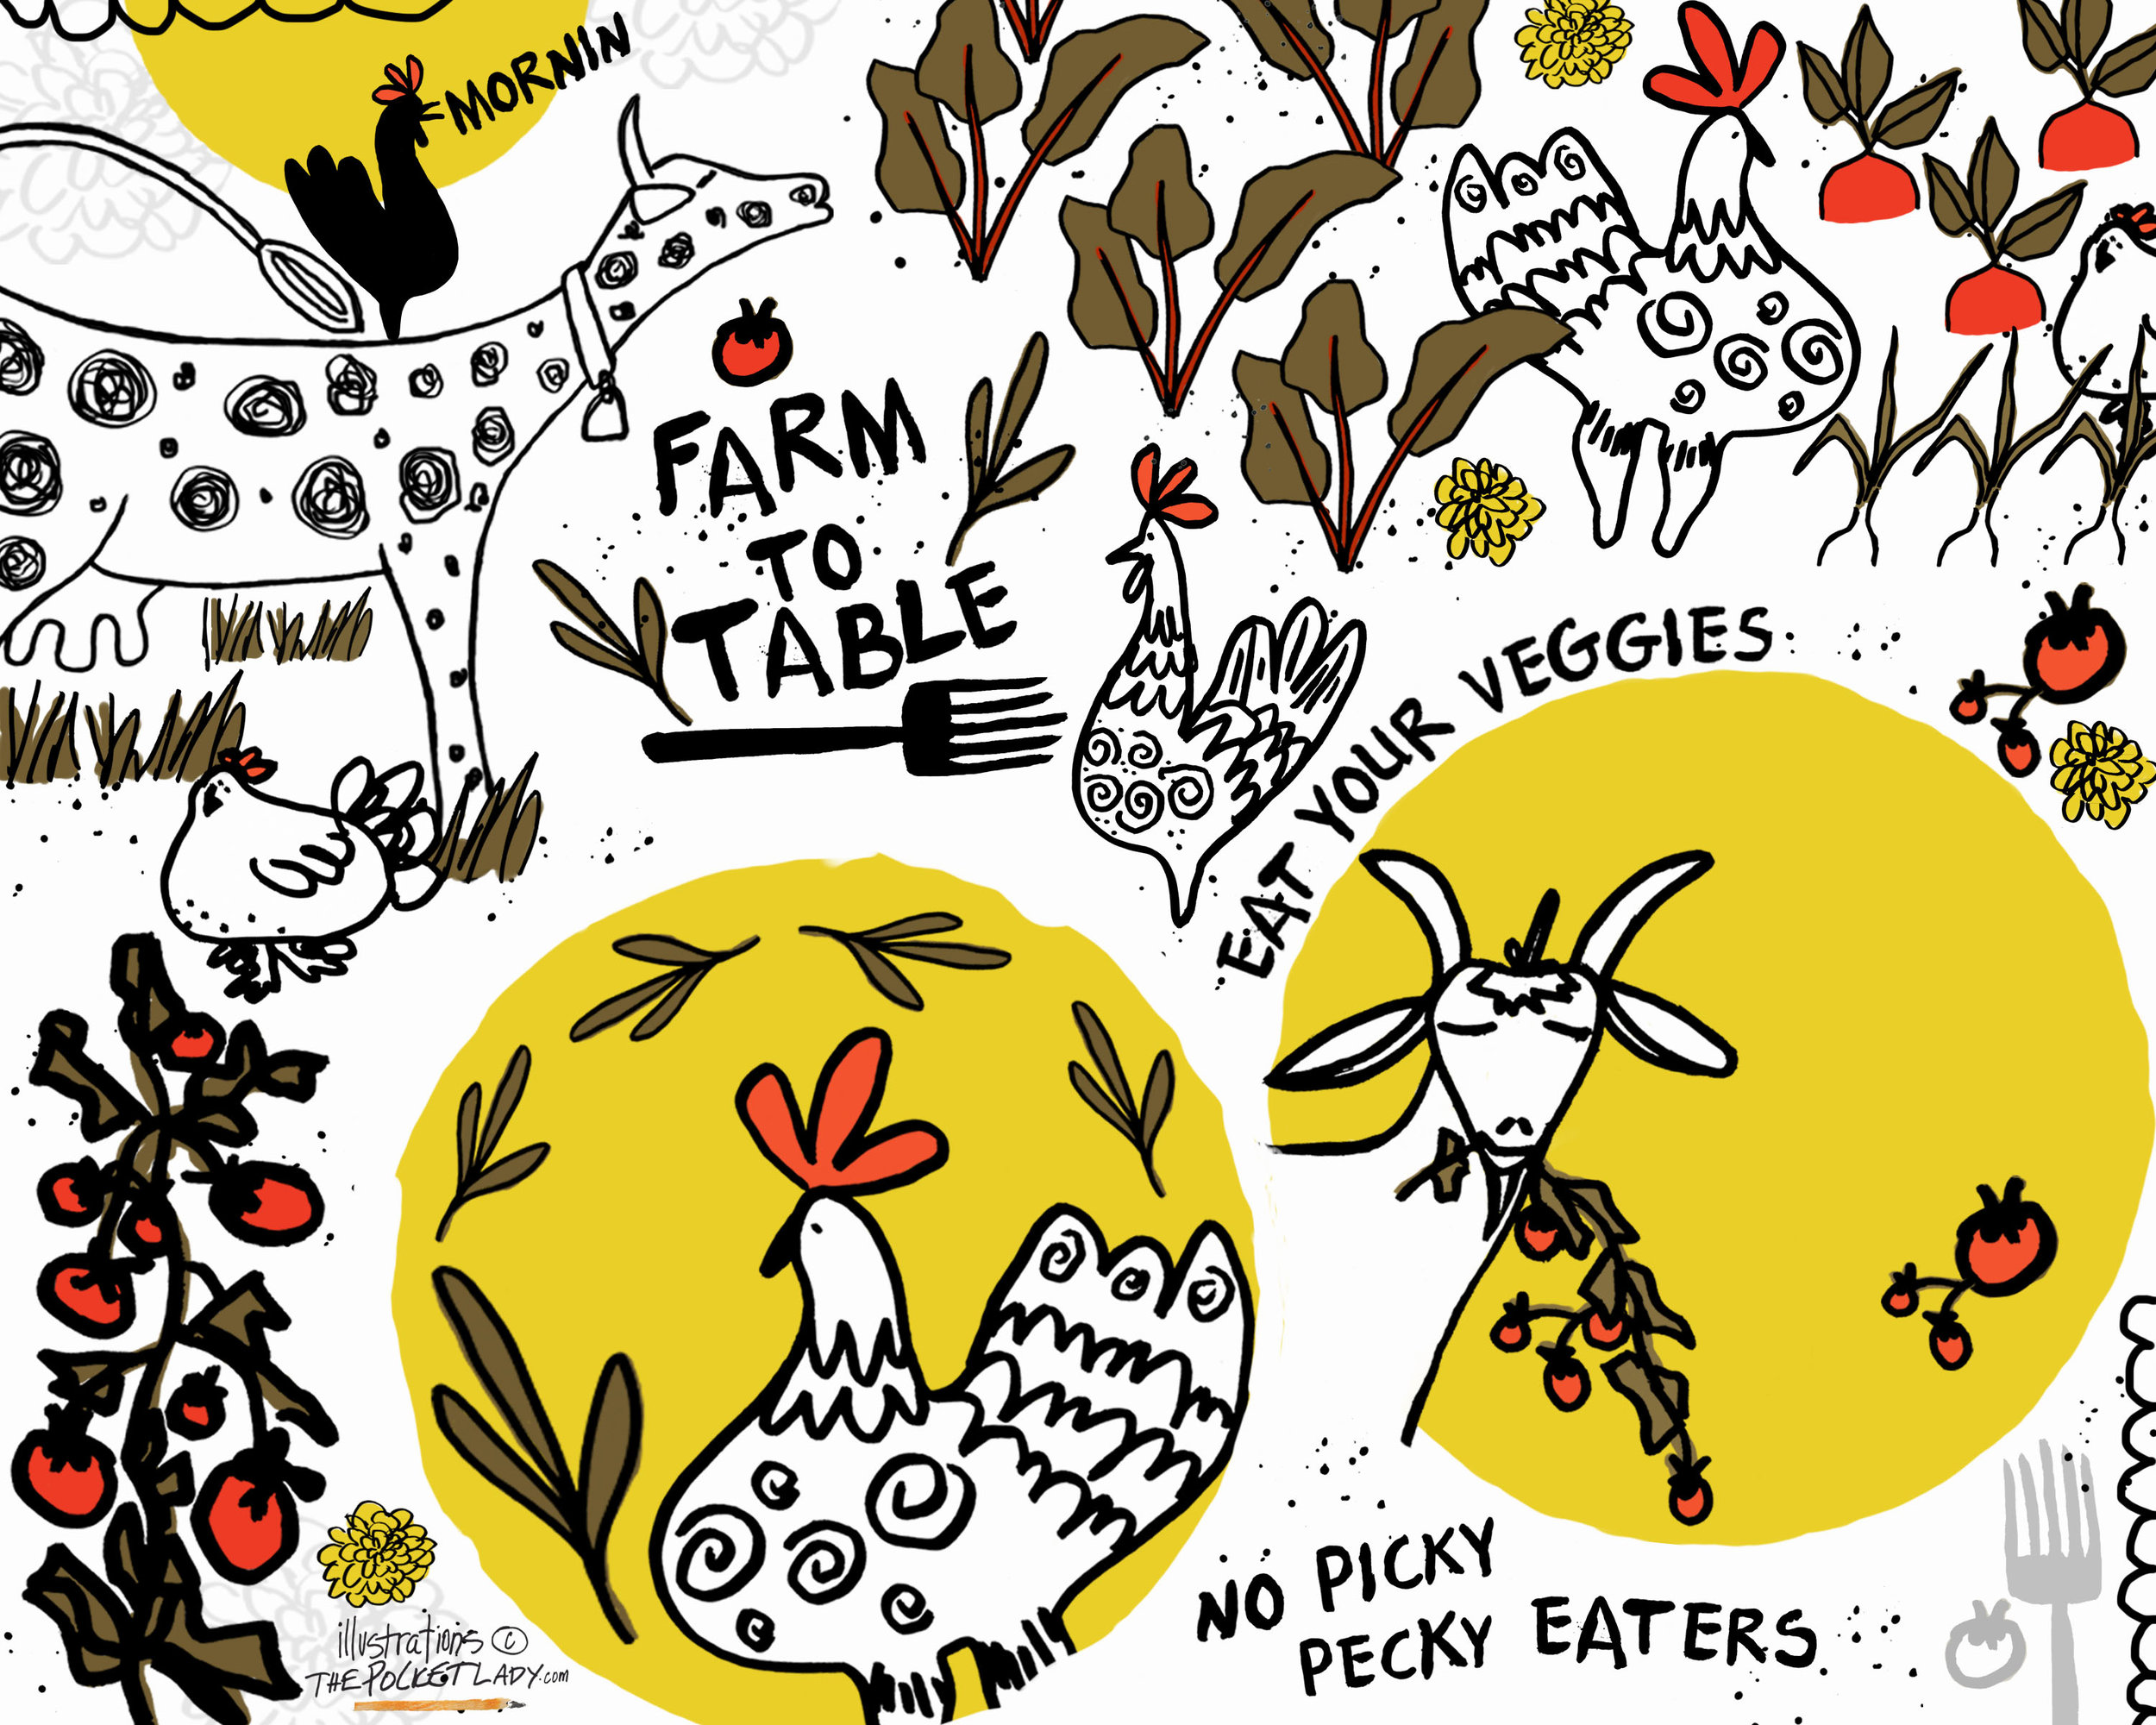 DENISE_SHIVES_FARM TO TABLE_A6-WK2.jpg